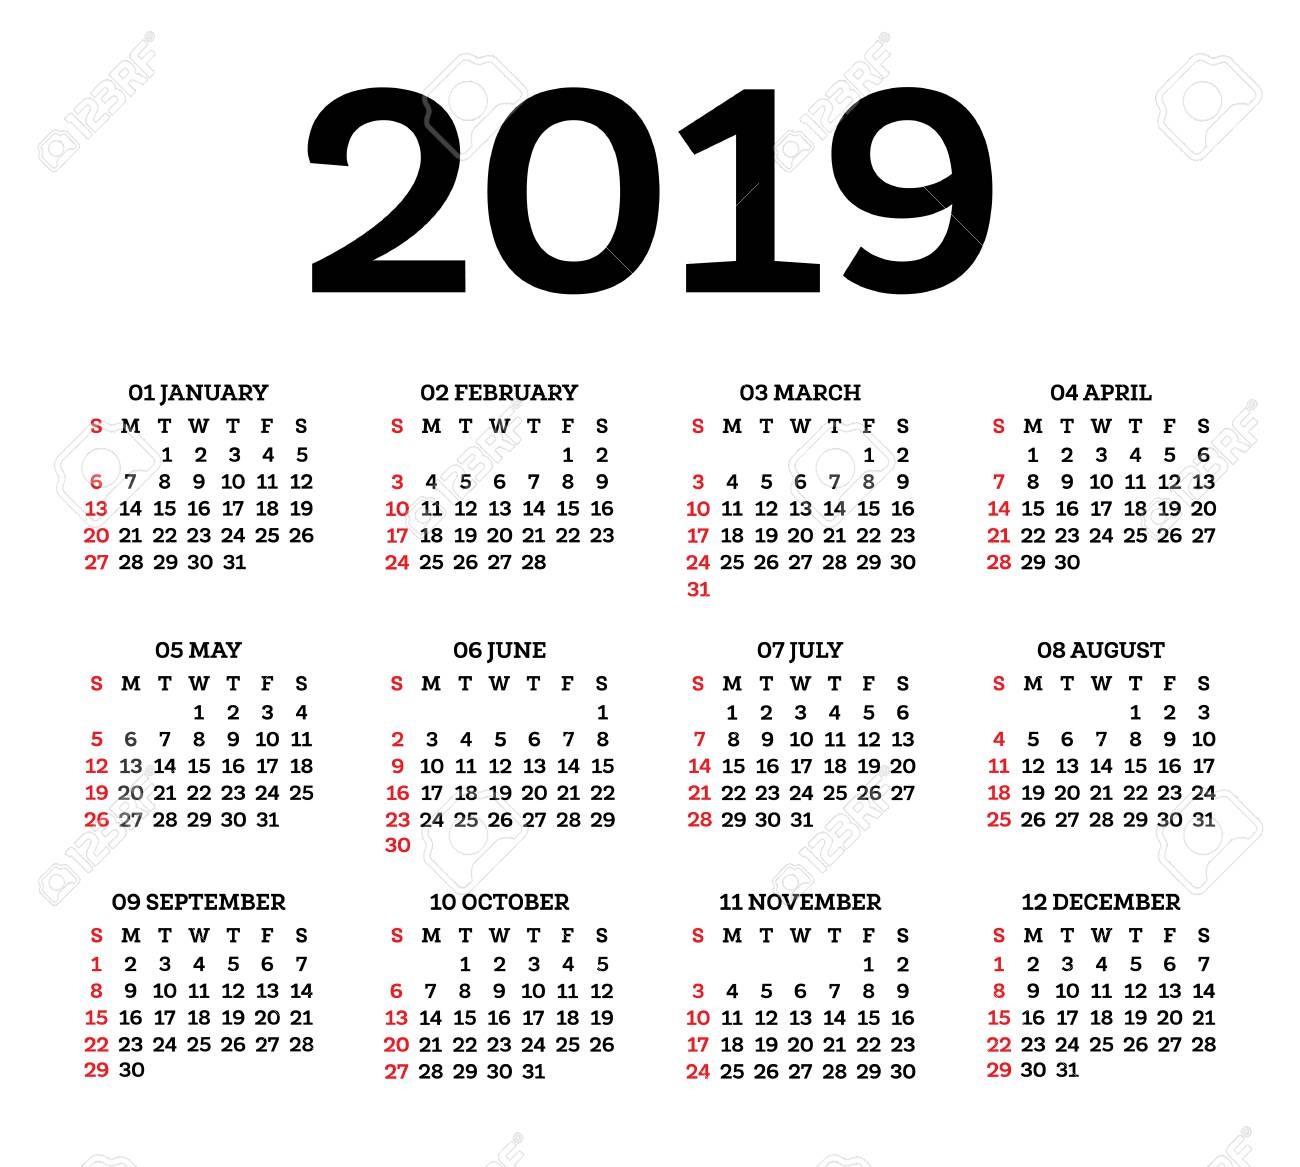 Calendario Con Week 2019.Calendar 2019 Isolated On White Background Week Starts From